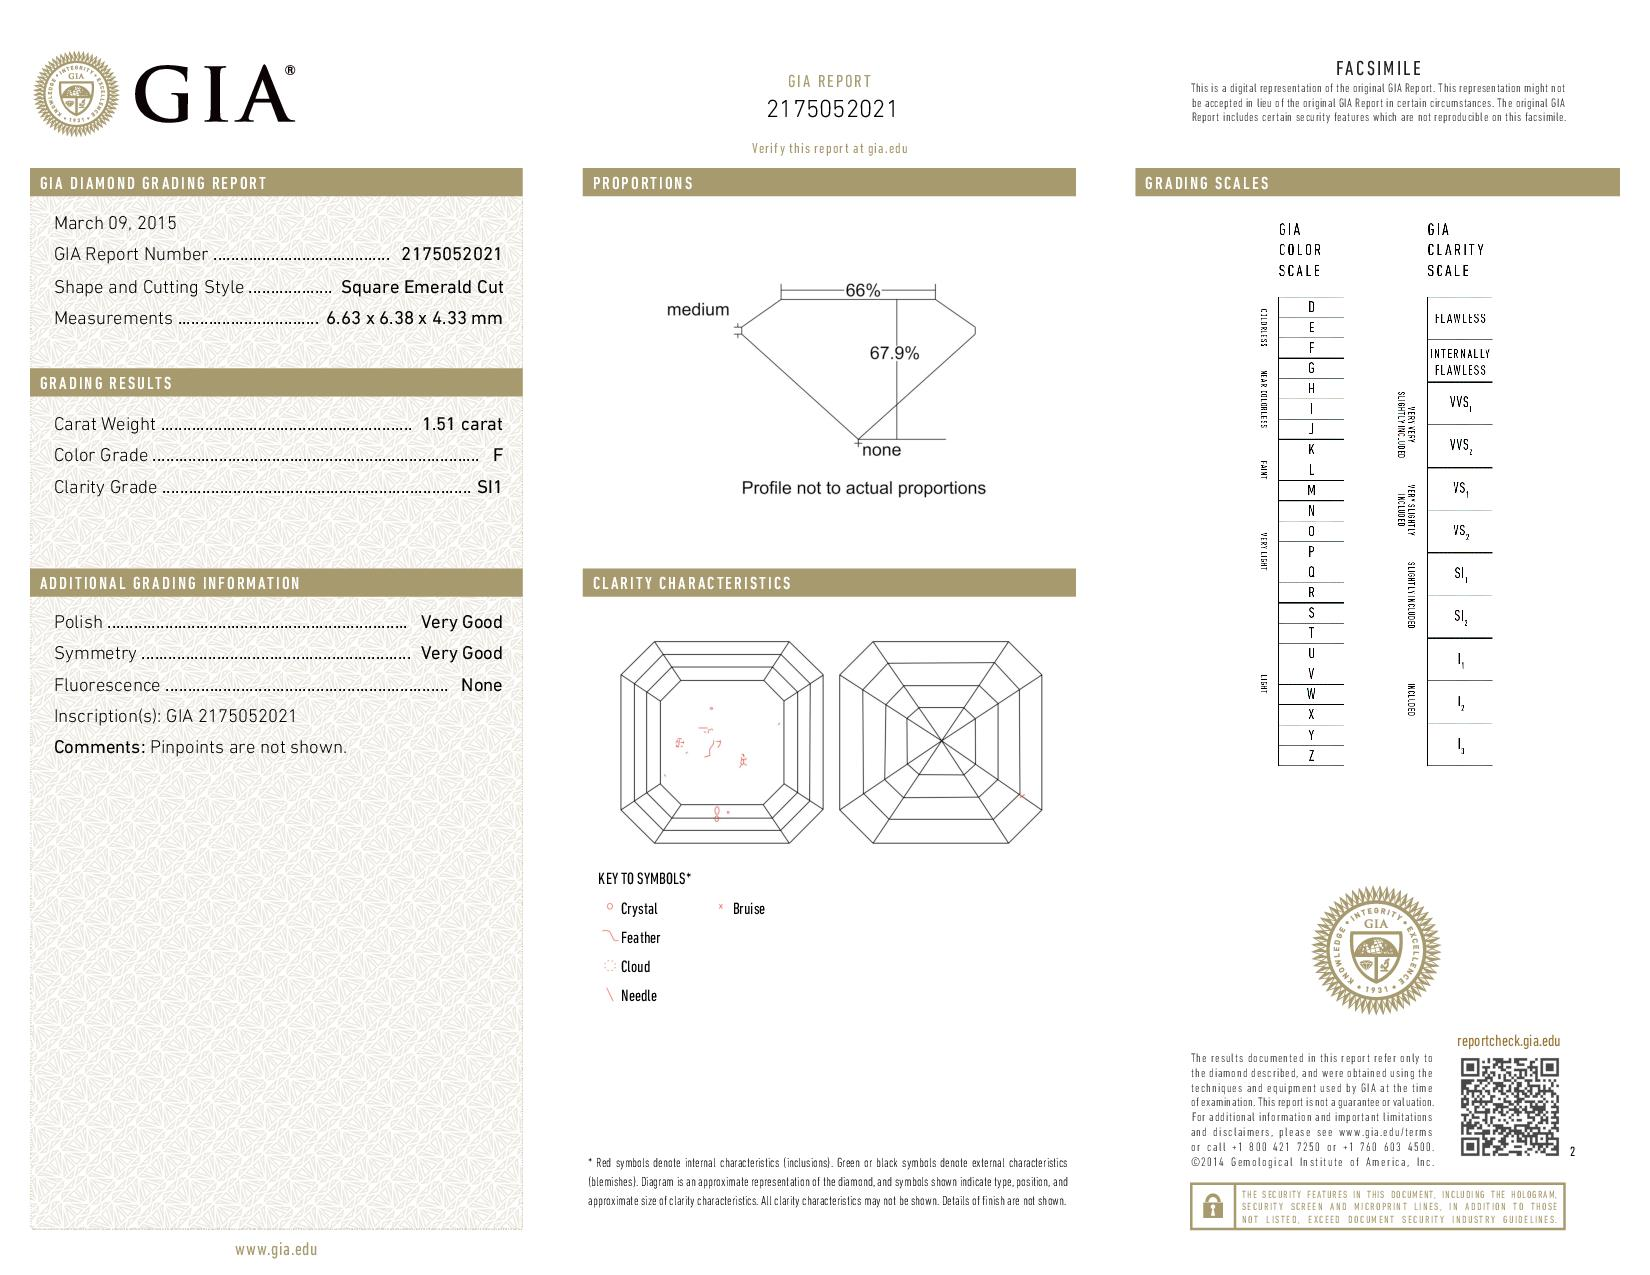 This is a 1.51 carat asscher shape, F color, SI1 clarity natural diamond accompanied by a GIA grading report.